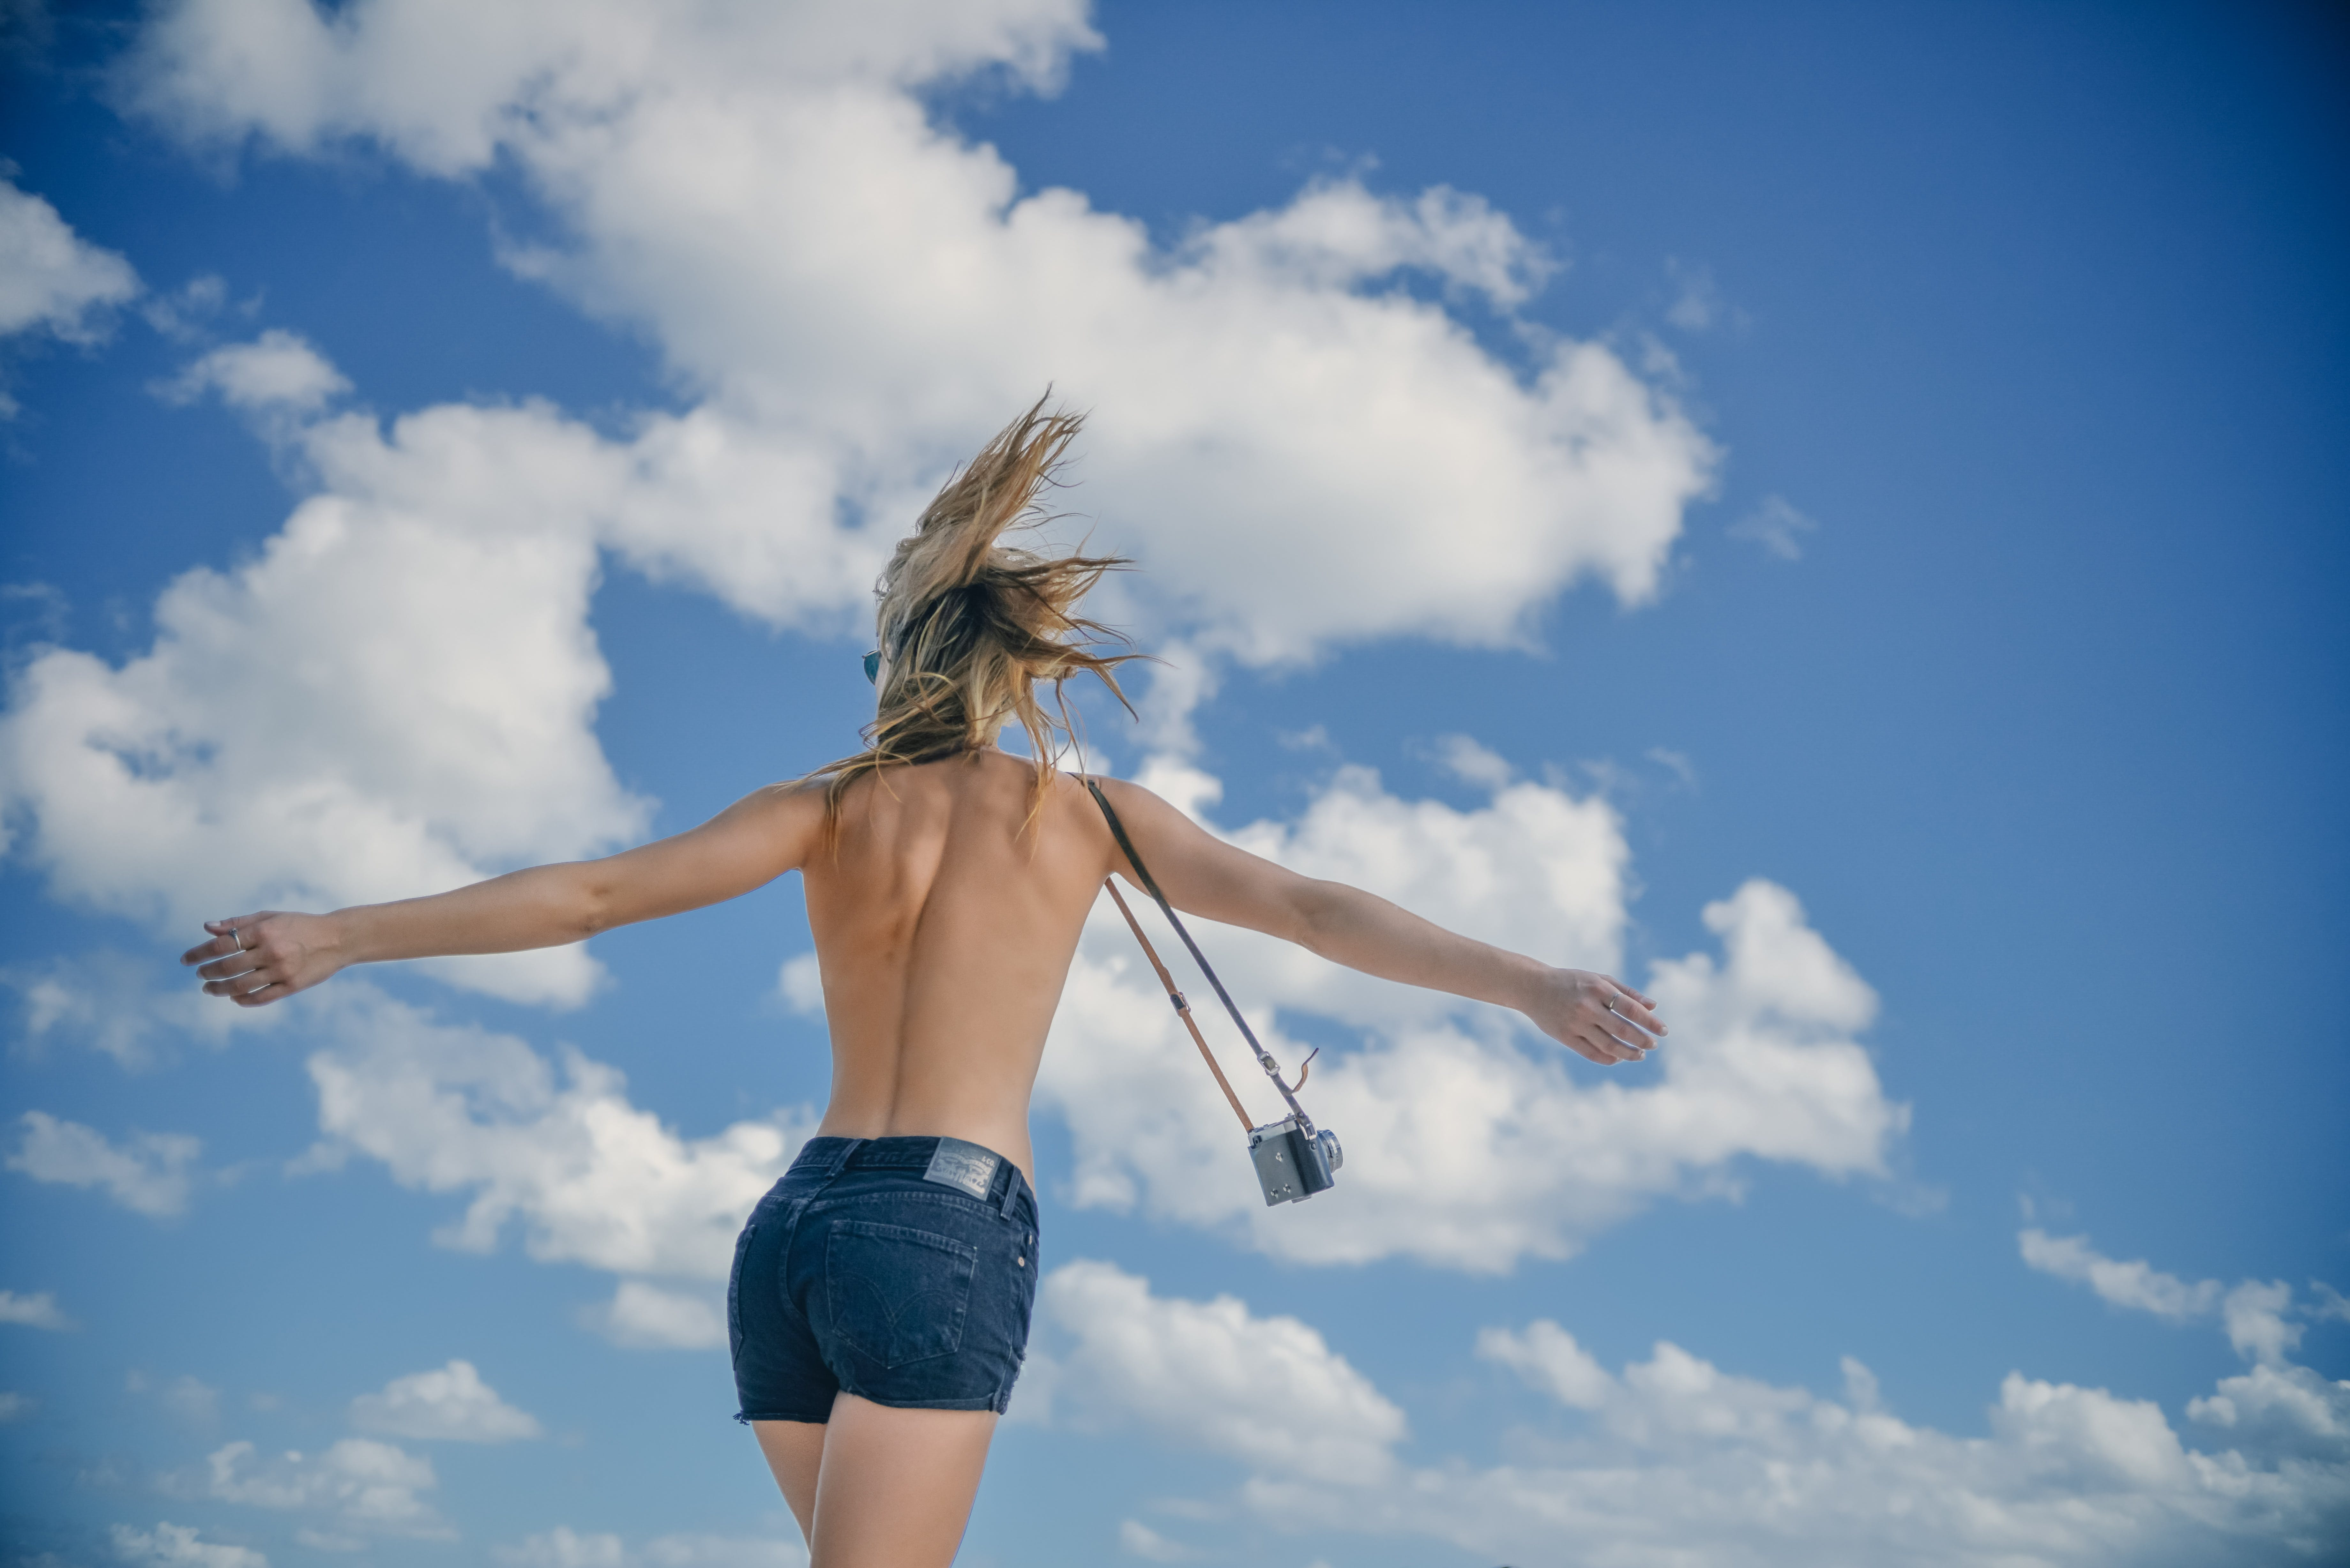 Topless Woman Wearing Blue Denim Short Shorts Doing Open Arms